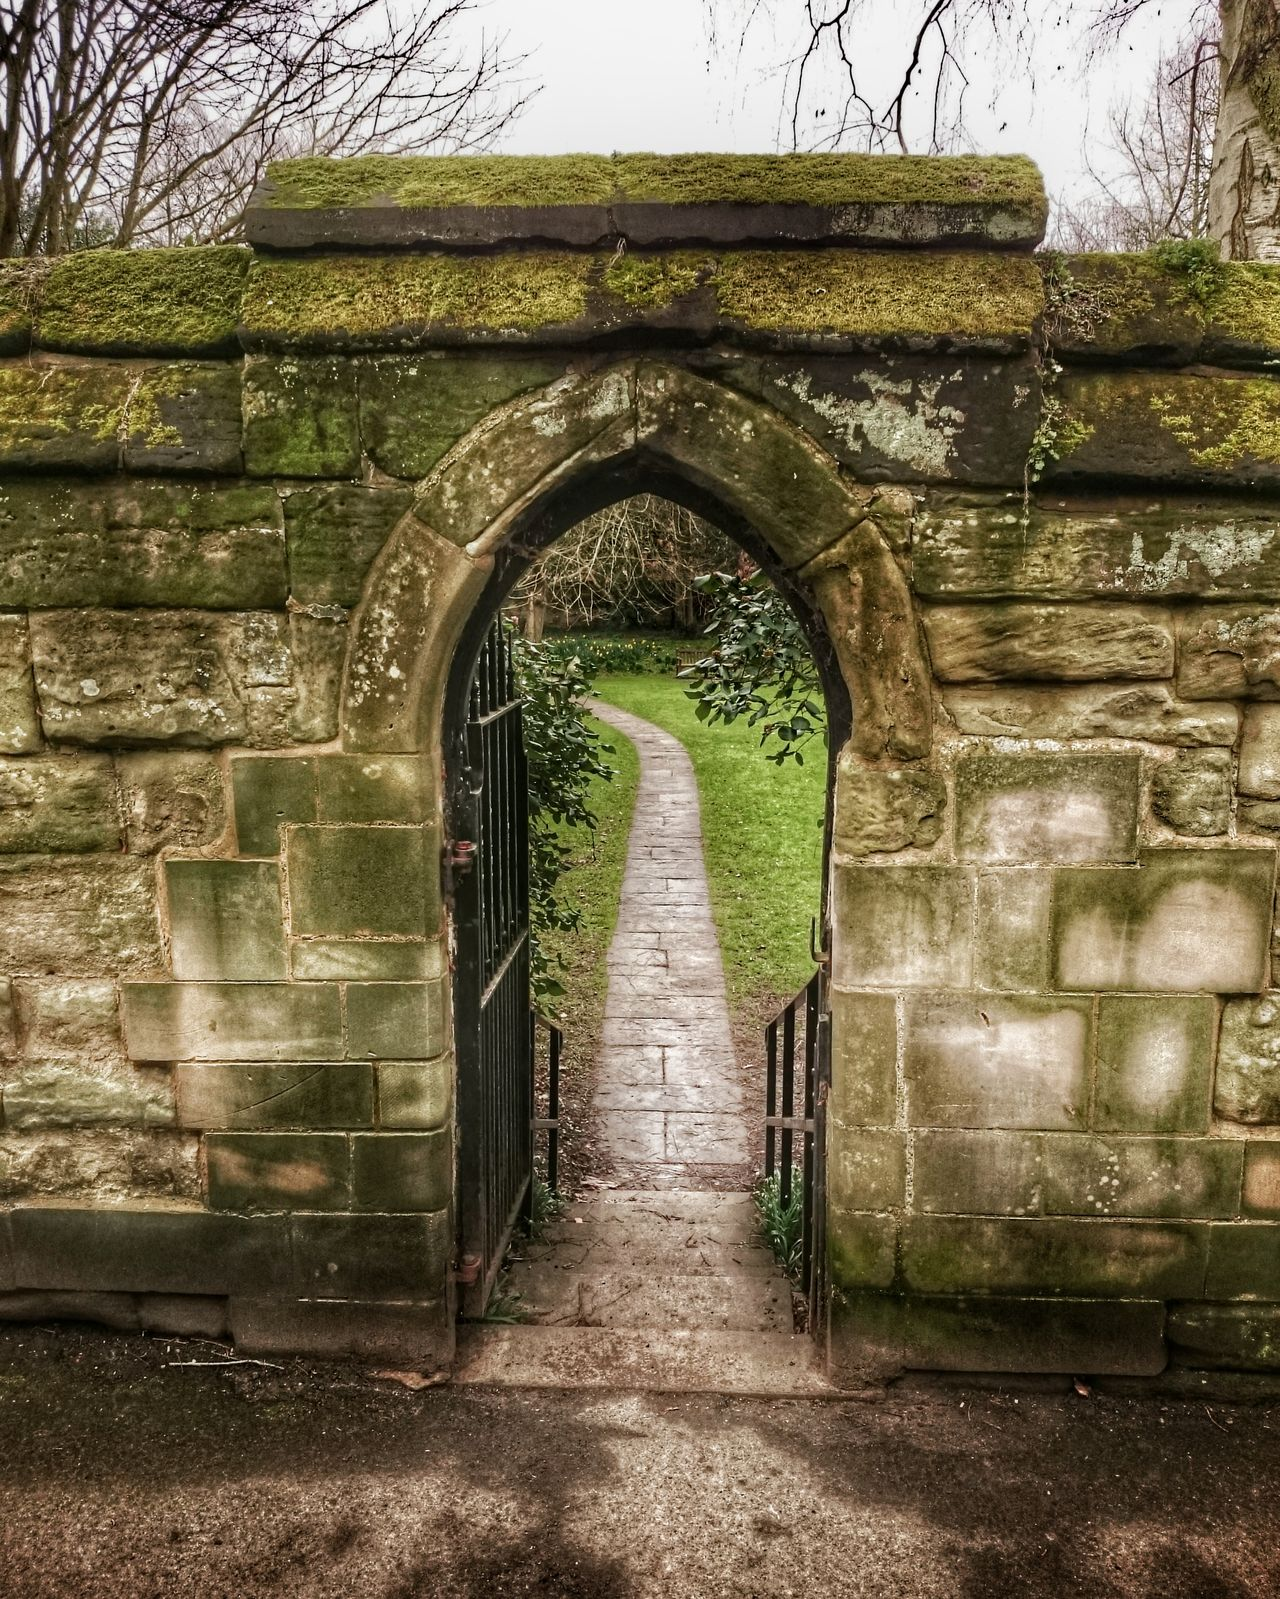 Stone Arch Stone Wall Old Town Path Garden February Gloomy Weather Flagstones Warwick Warwickshire Doorway Stone Steps Moss-covered Stained Fine Art Photography